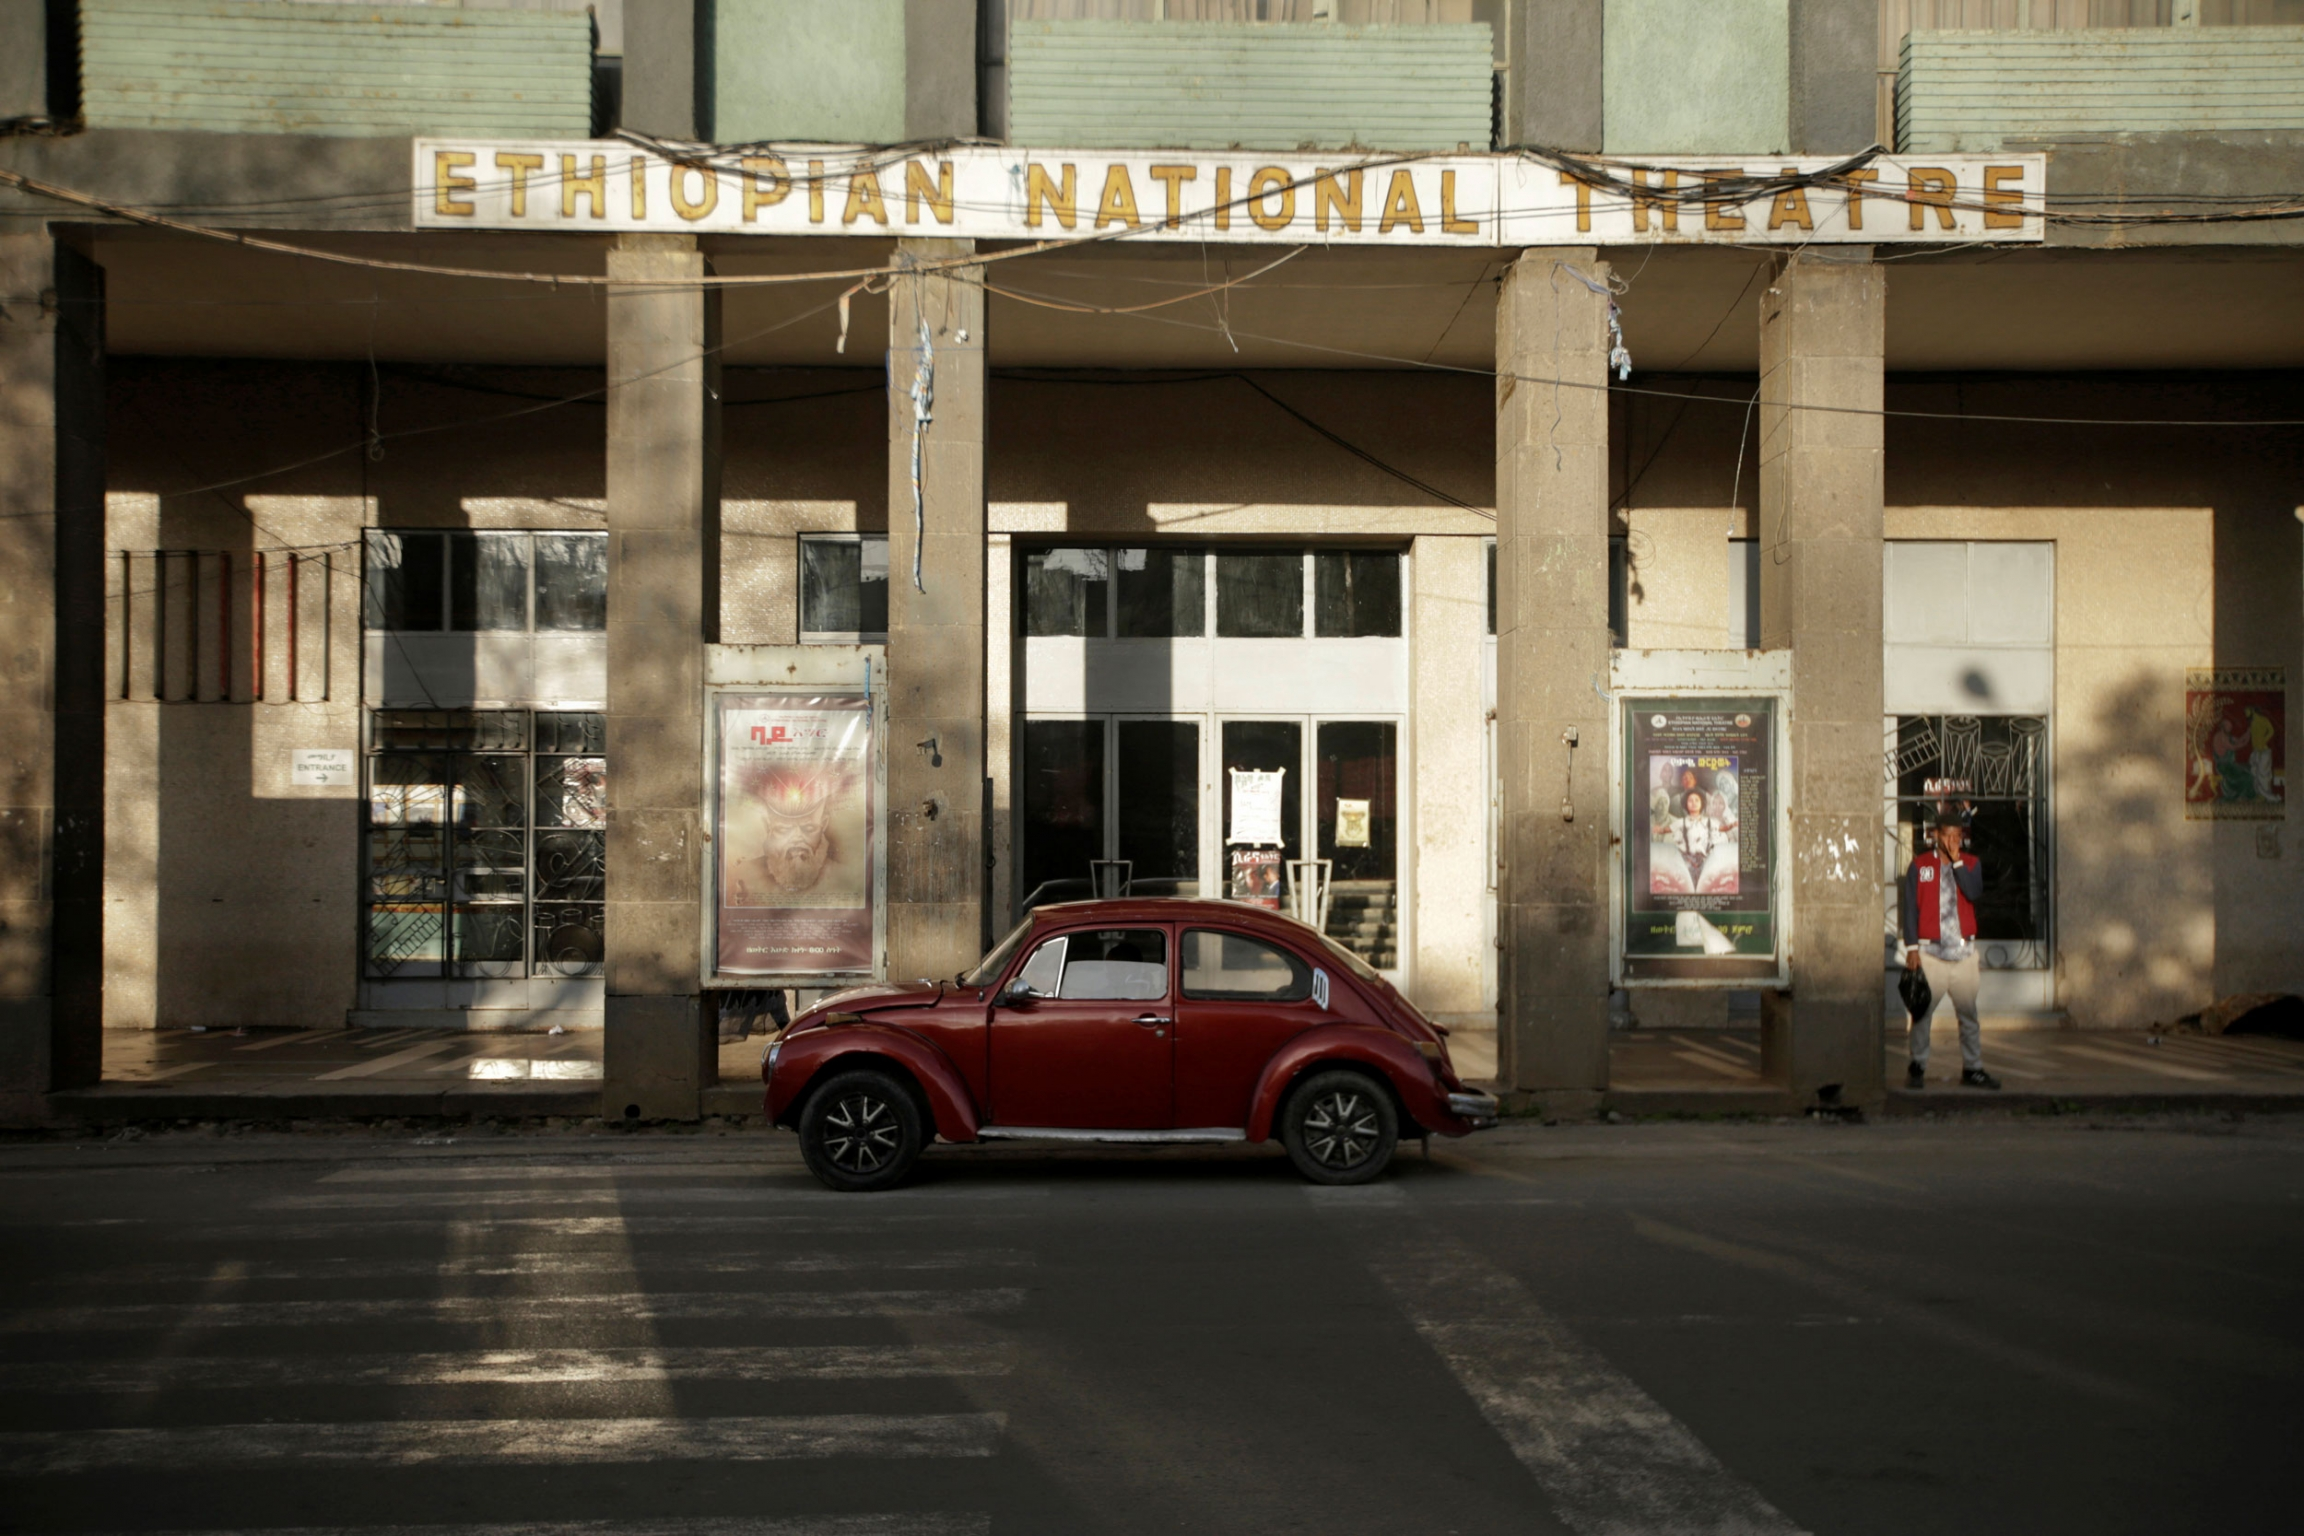 A red Volkswagen Beetle is show parked in front of the tall columns of the Ethiopian National Theatre.